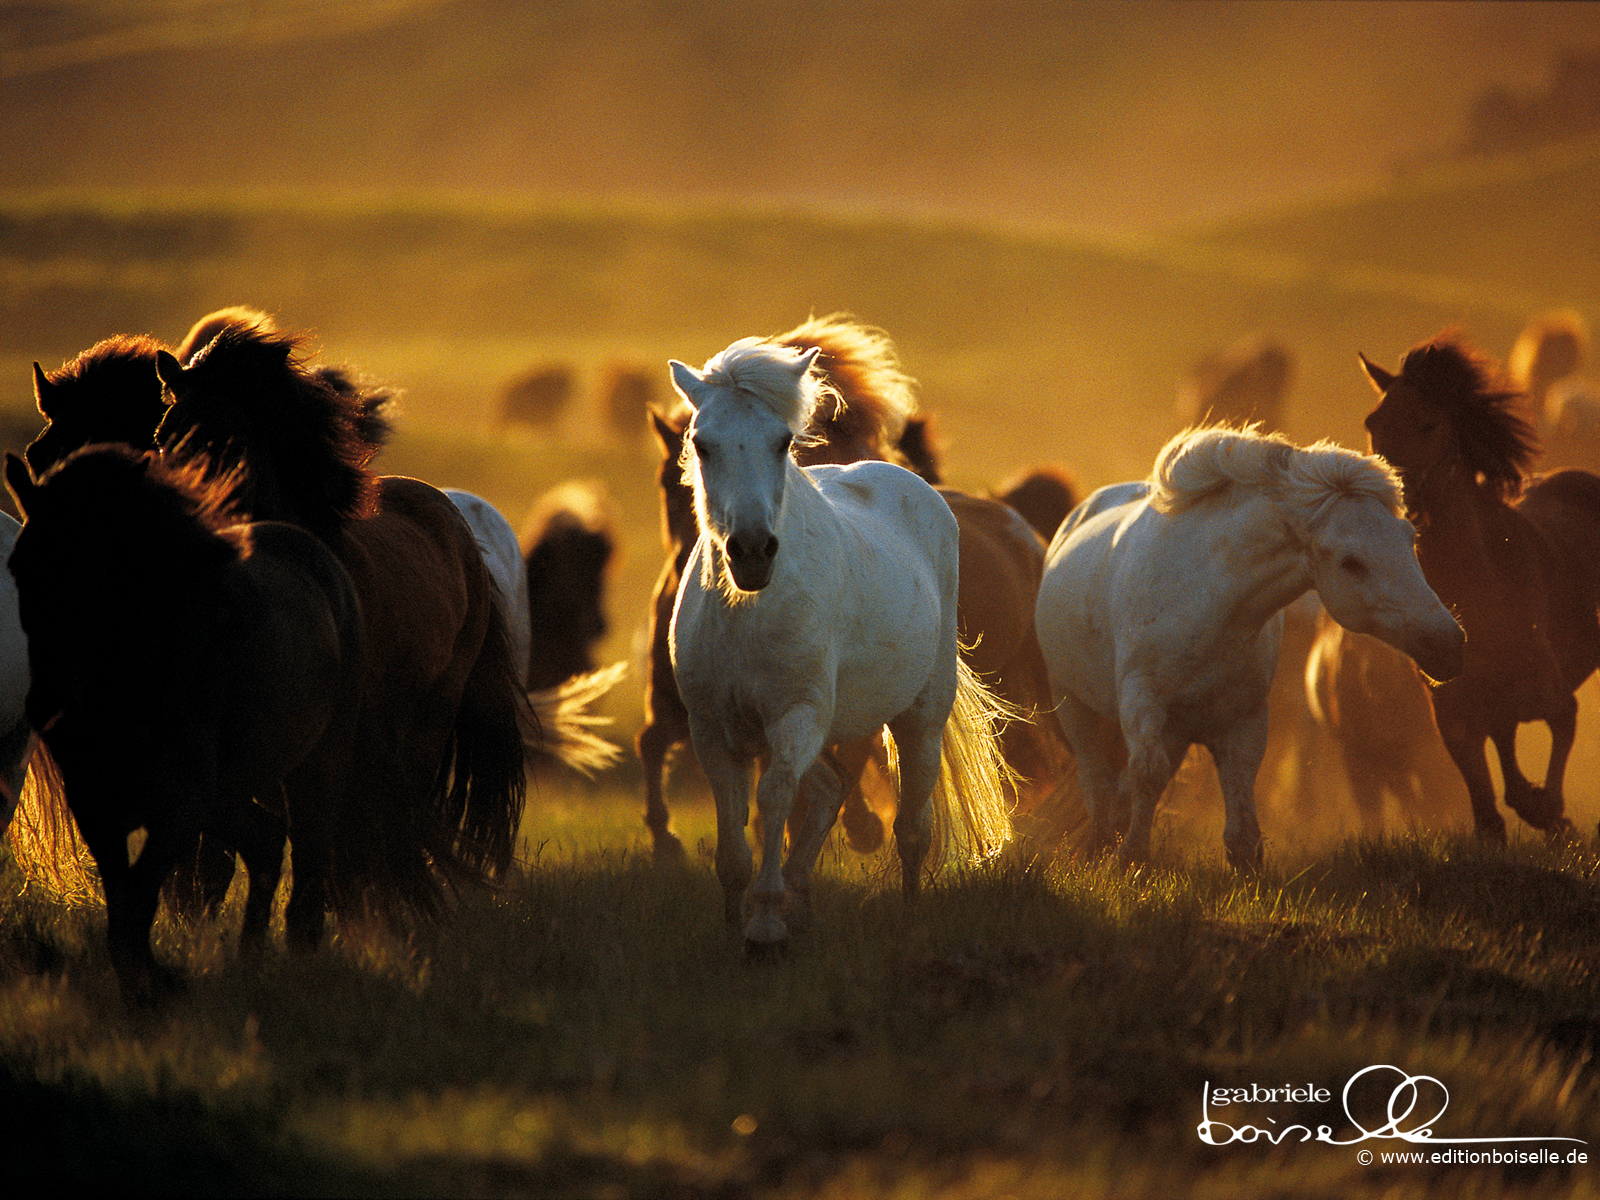 Horses images Horse Wallpaper HD wallpaper and background 1600x1200